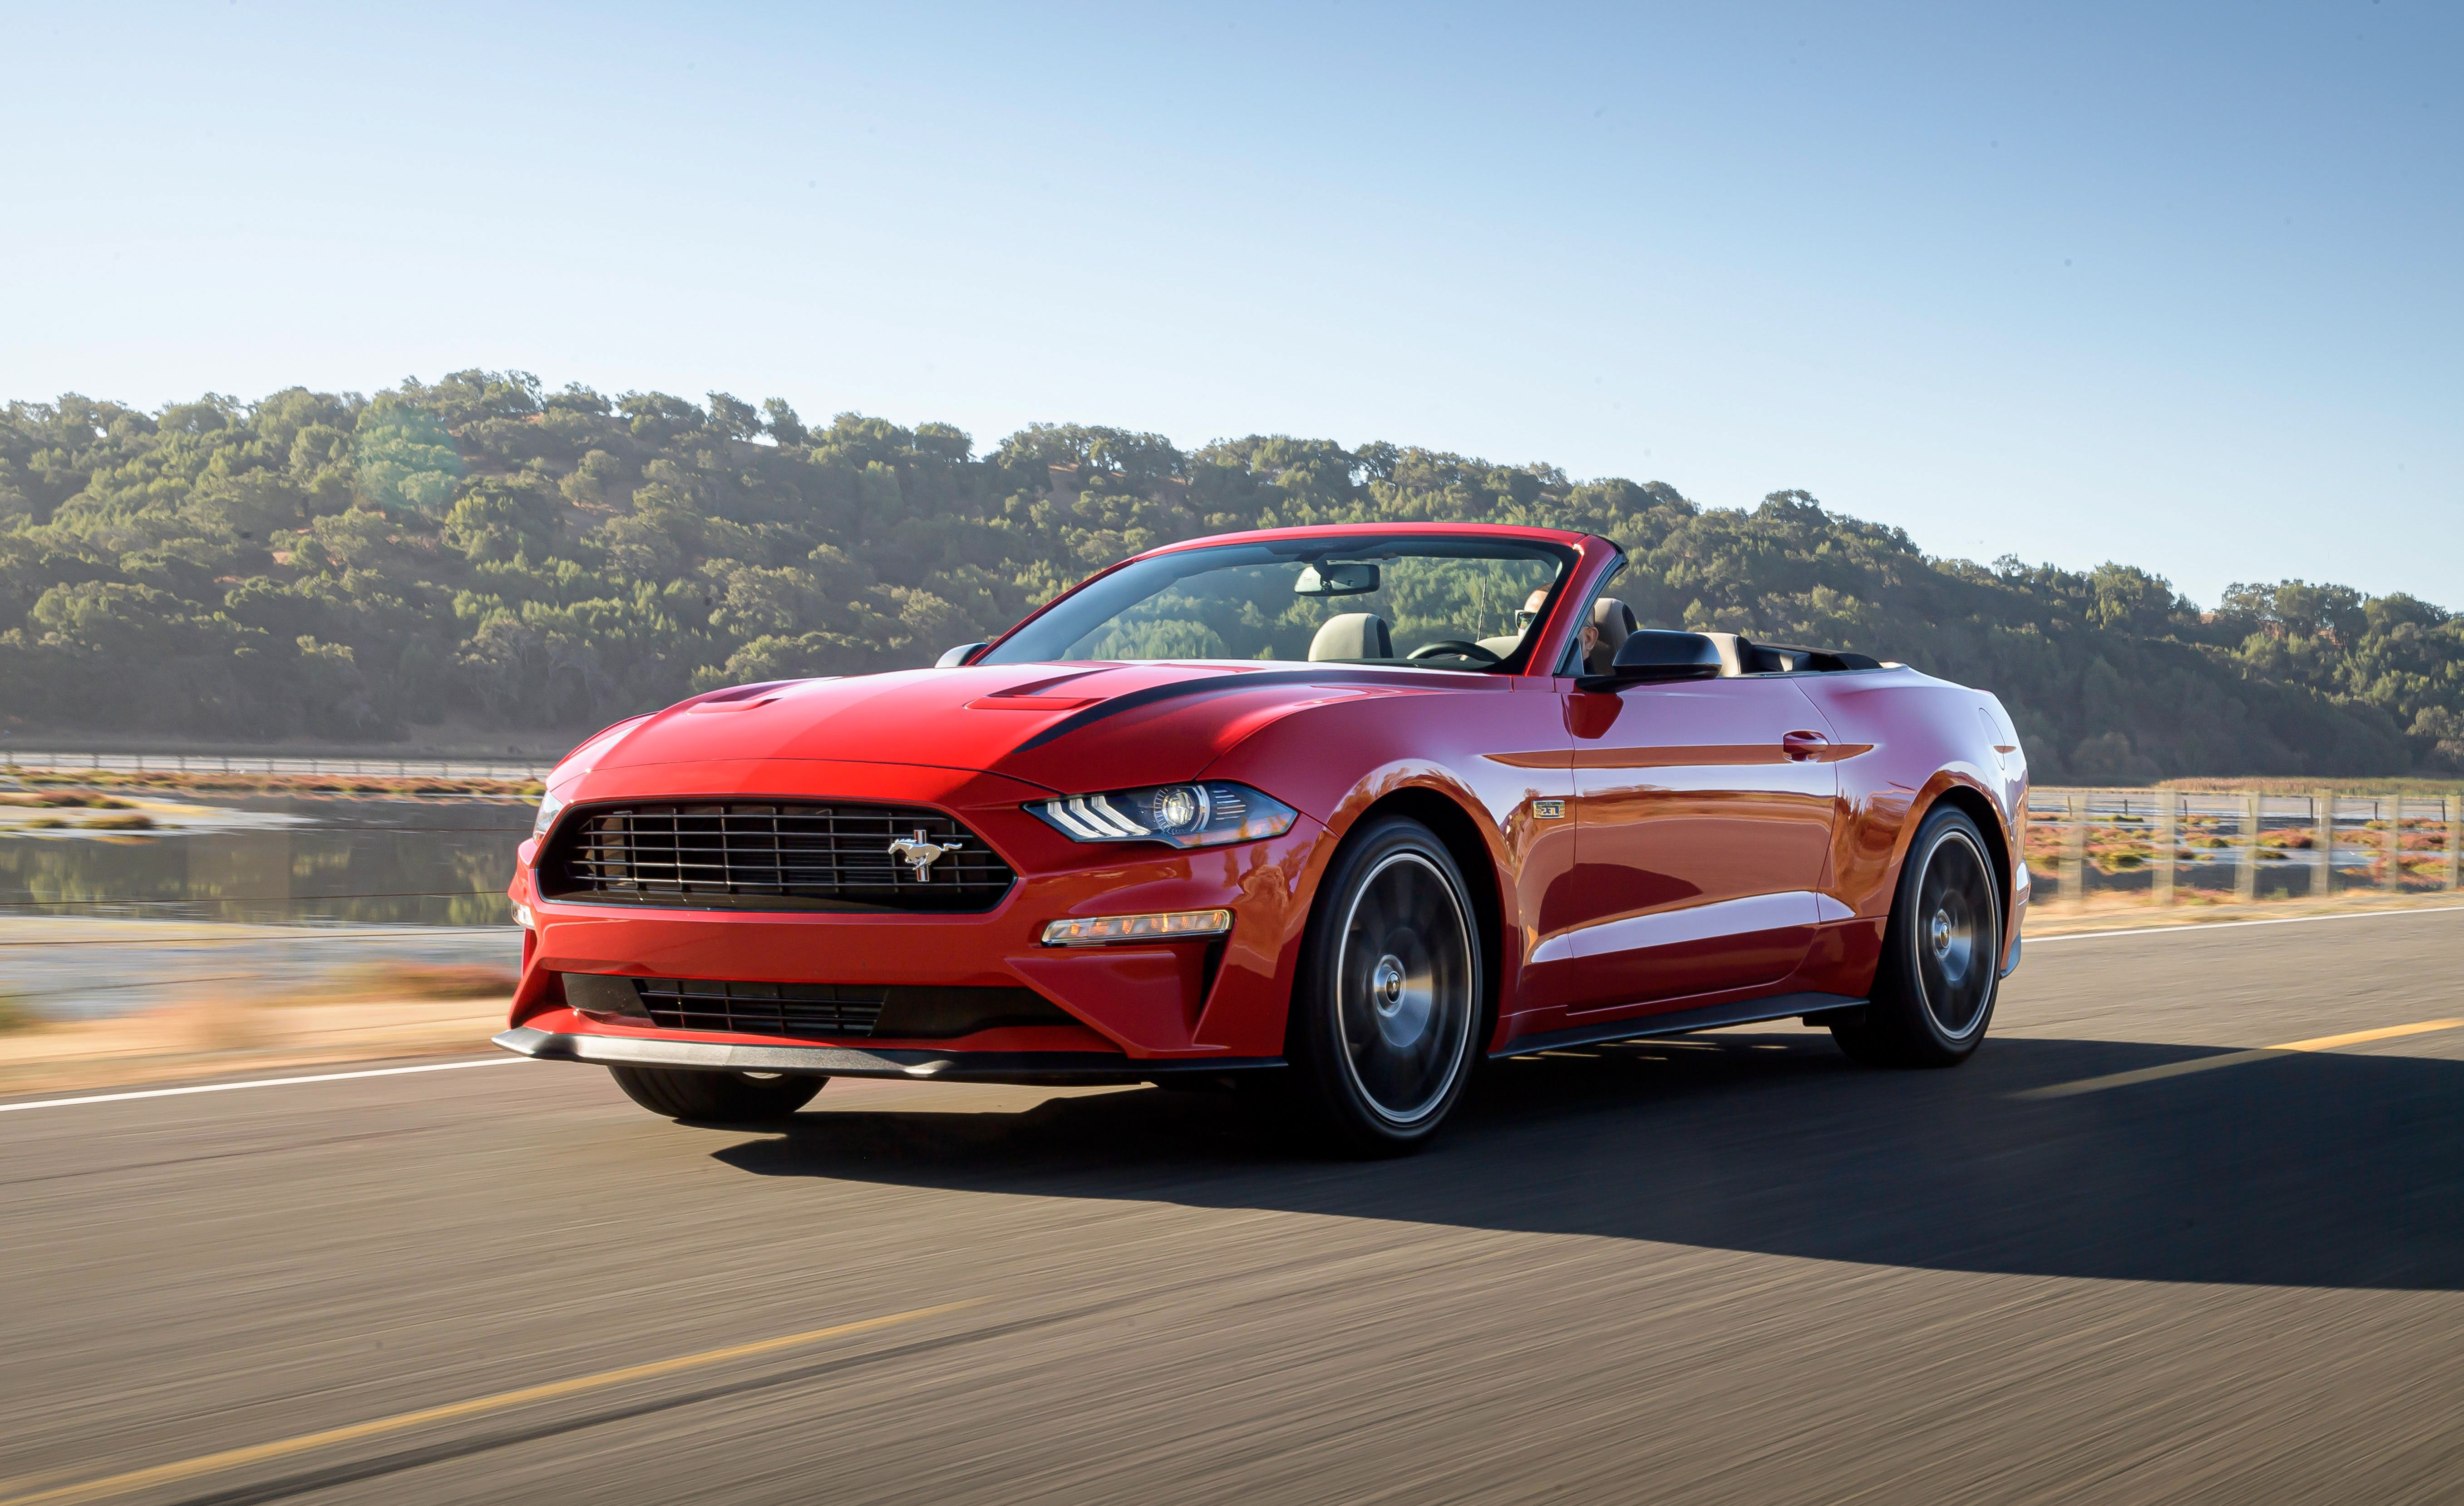 To get that kind of power out of the engine, the sports car is fitted with a cold air intake, an upgraded. 2020 Ford Mustang Review Pricing And Specs